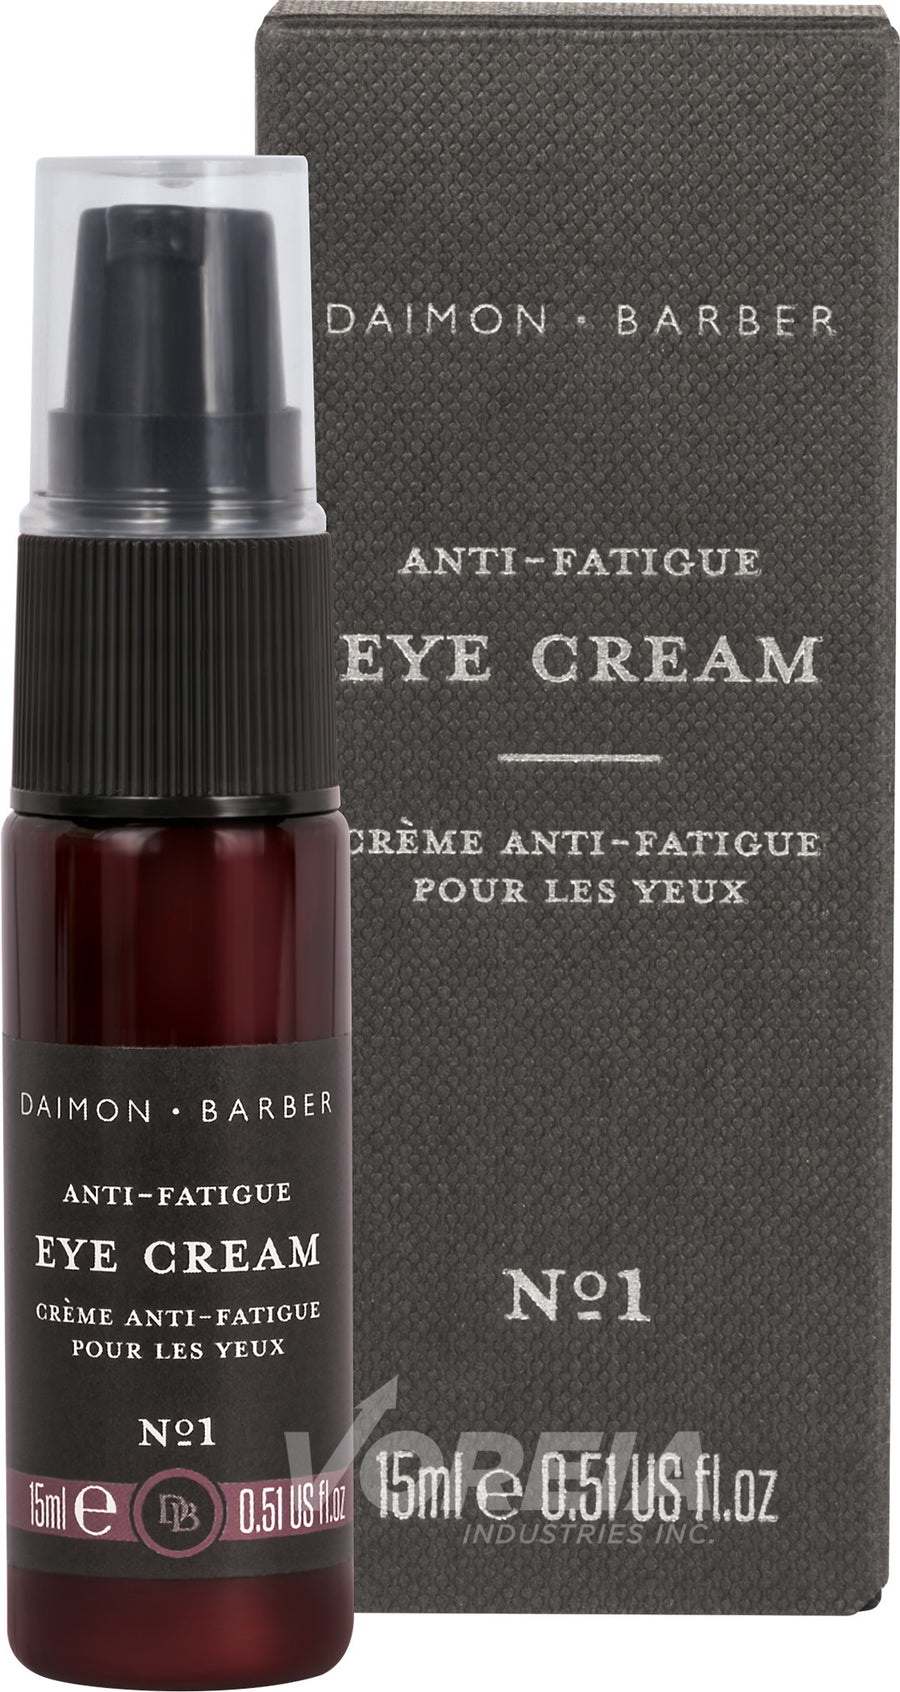 Daimon Barber Eye Cream 15ml